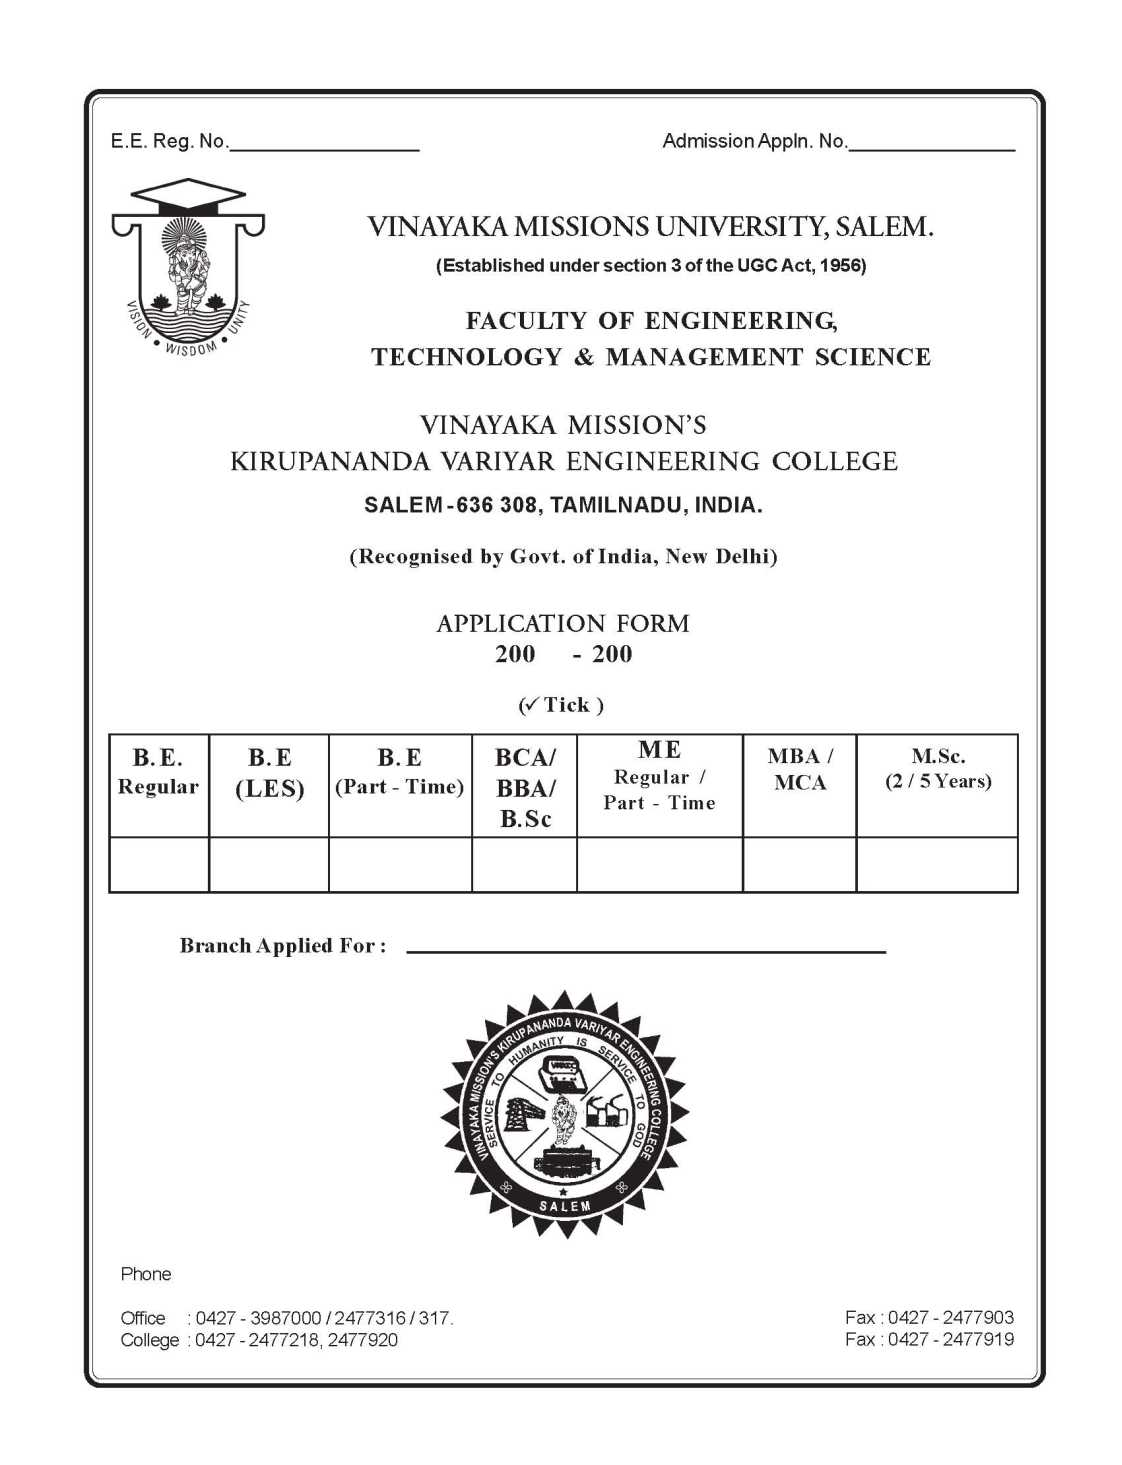 Vinayaka mission university part time be admission 2018 2019 here i am attaching a pdf file of application form yadclub Choice Image